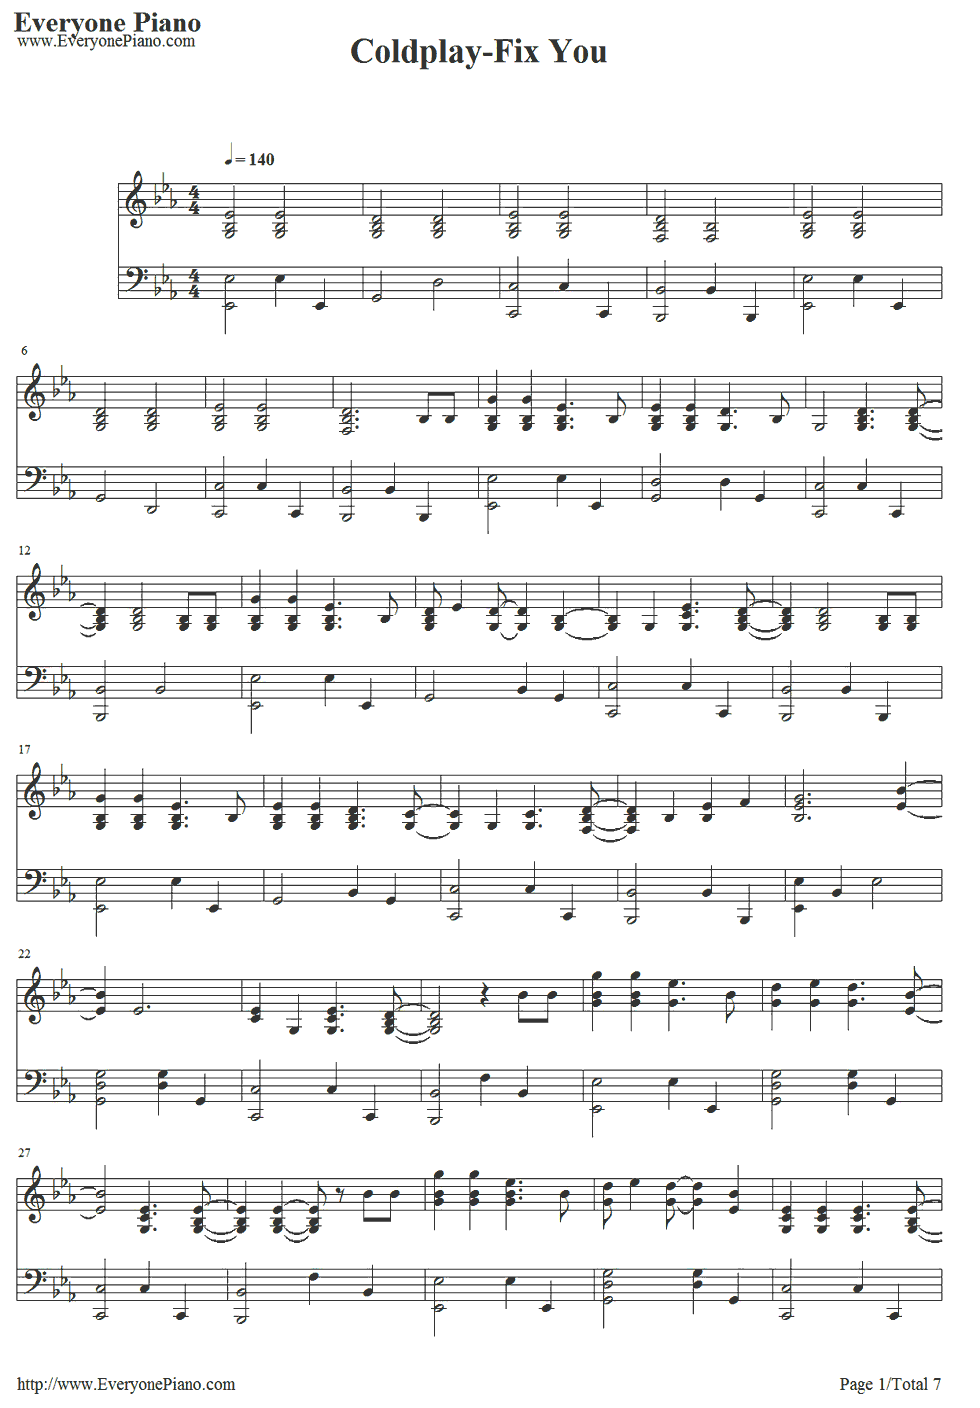 Free fix you coldplay sheet music preview 1 pinteres free fix you piano sheet music is provided for you fix you is a song by british alternative rock band coldplay hexwebz Choice Image